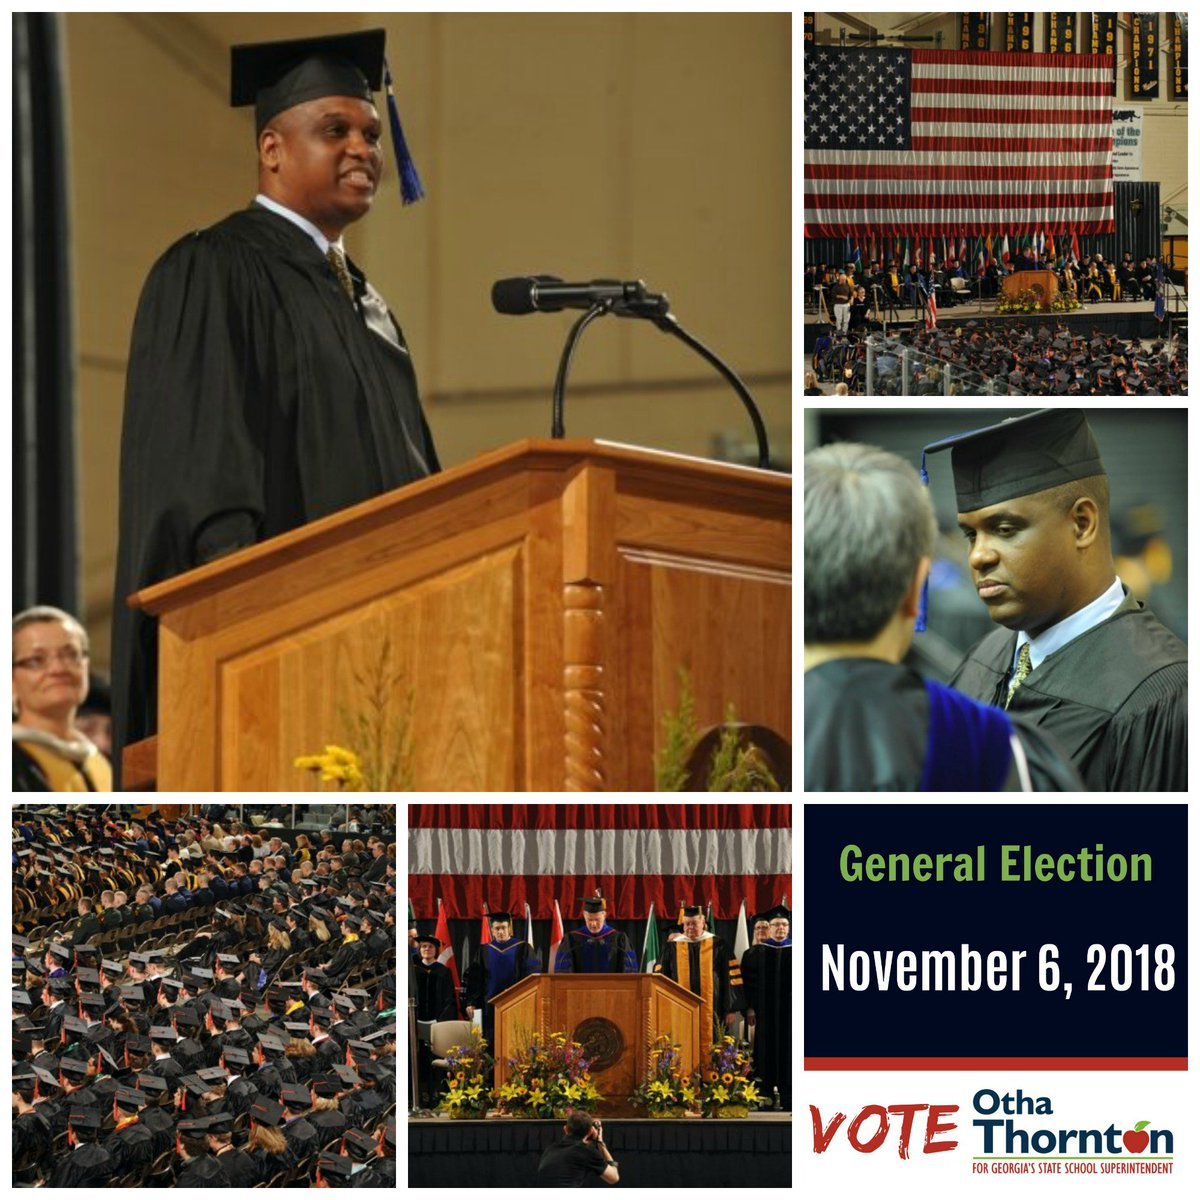 In 2009 I gave the commencement address at Michigan Technological University. I was recognized by my students and the University for outstanding performance and awarded an honorary doctorate.  #Leadership #VoteOtha #OthaforSupt #RestoringHope <br>http://pic.twitter.com/xeugik5Xzl